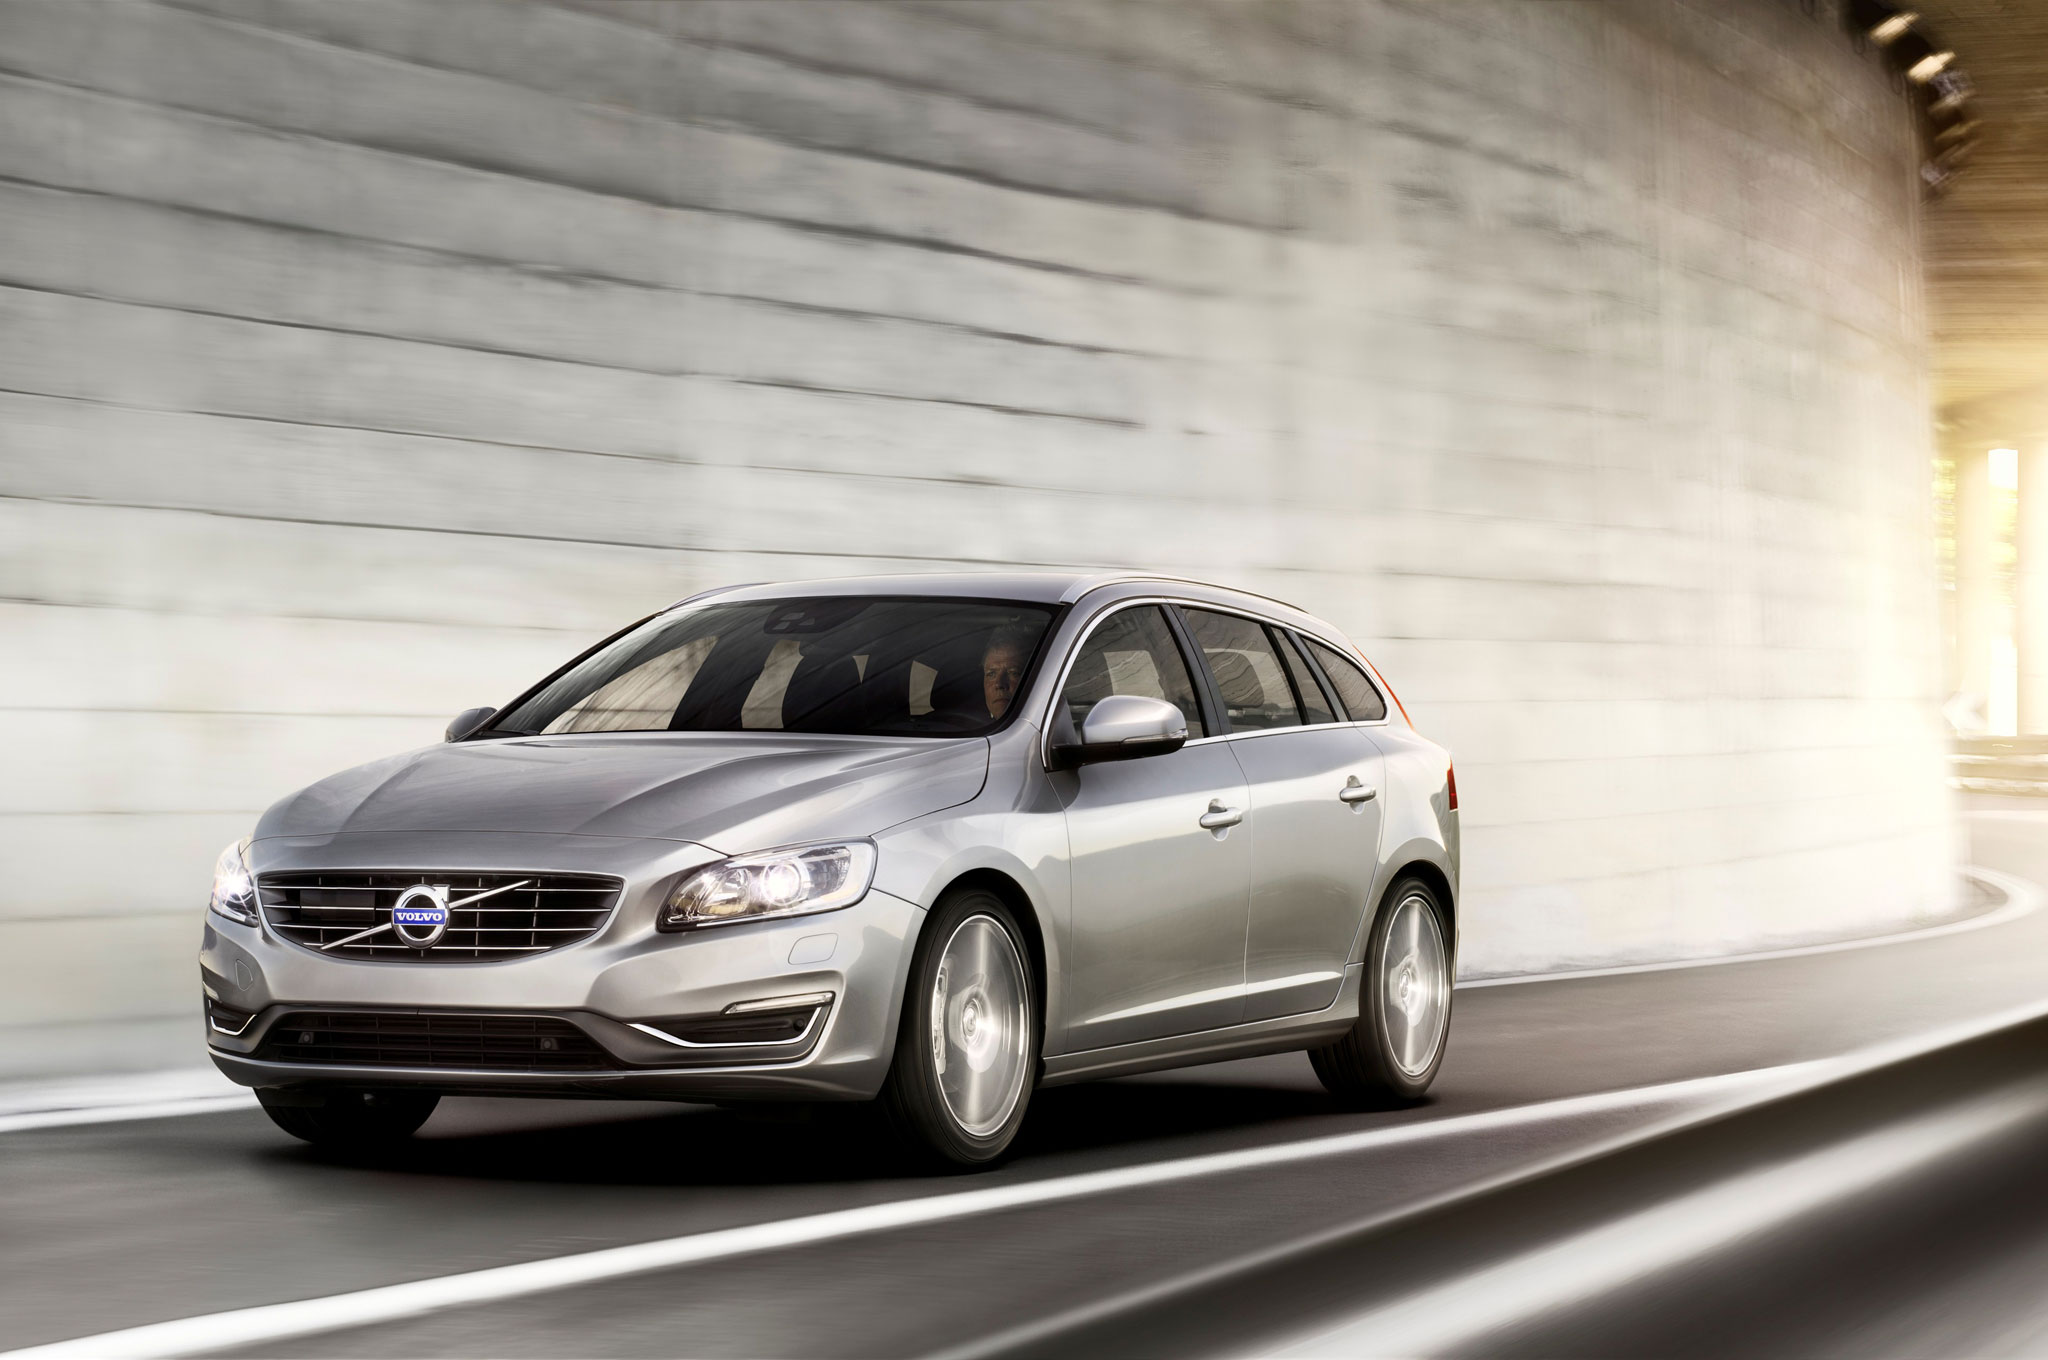 2015 Volvo V60 First Drive - Automobile Magazine